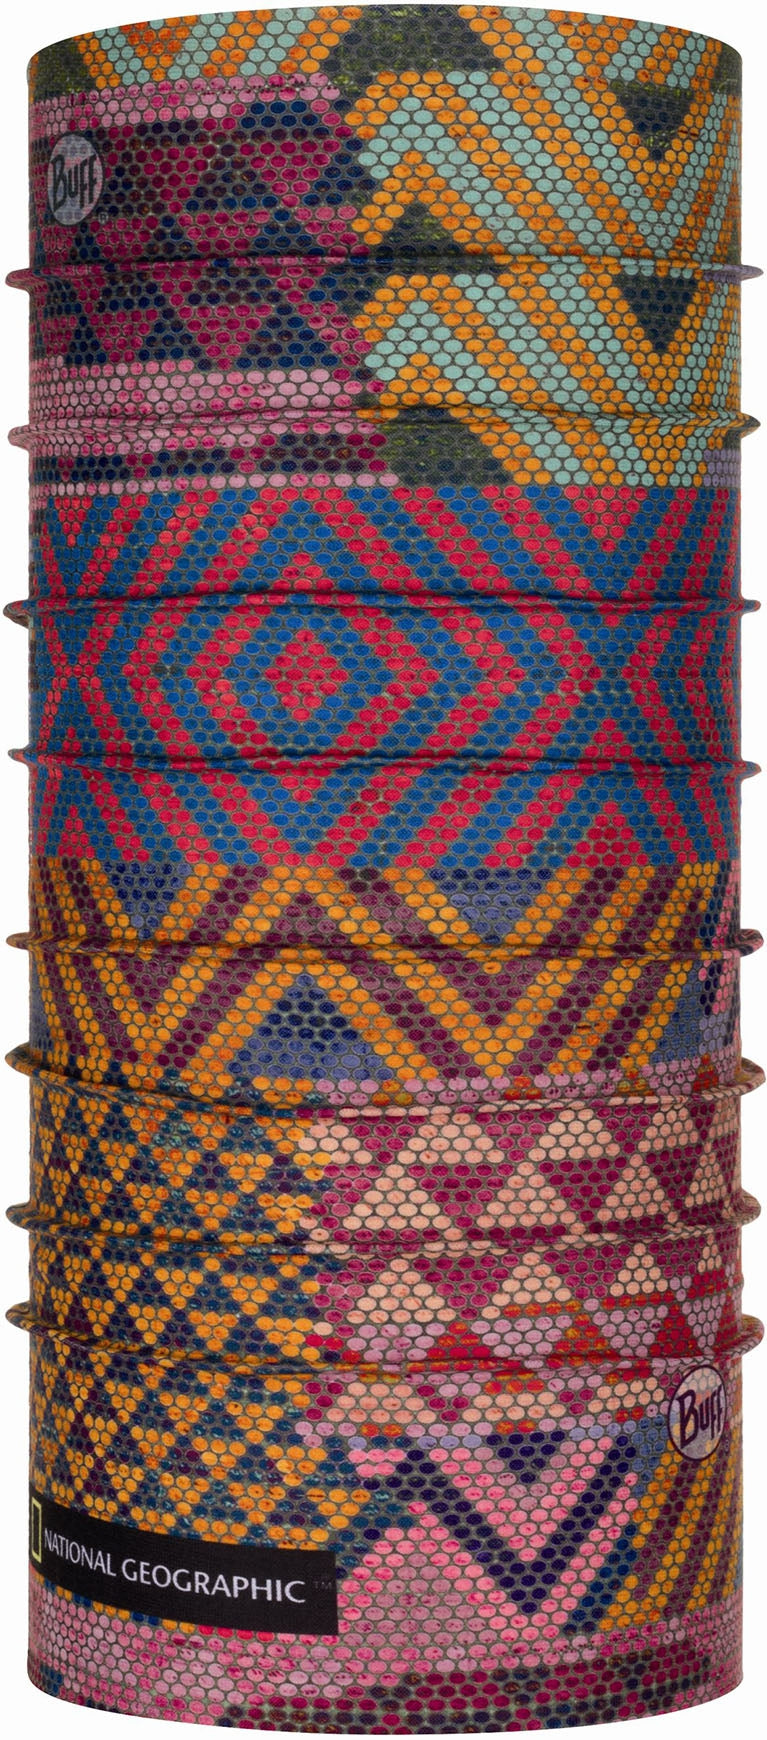 National Geographic Original Buff Eannia Multi